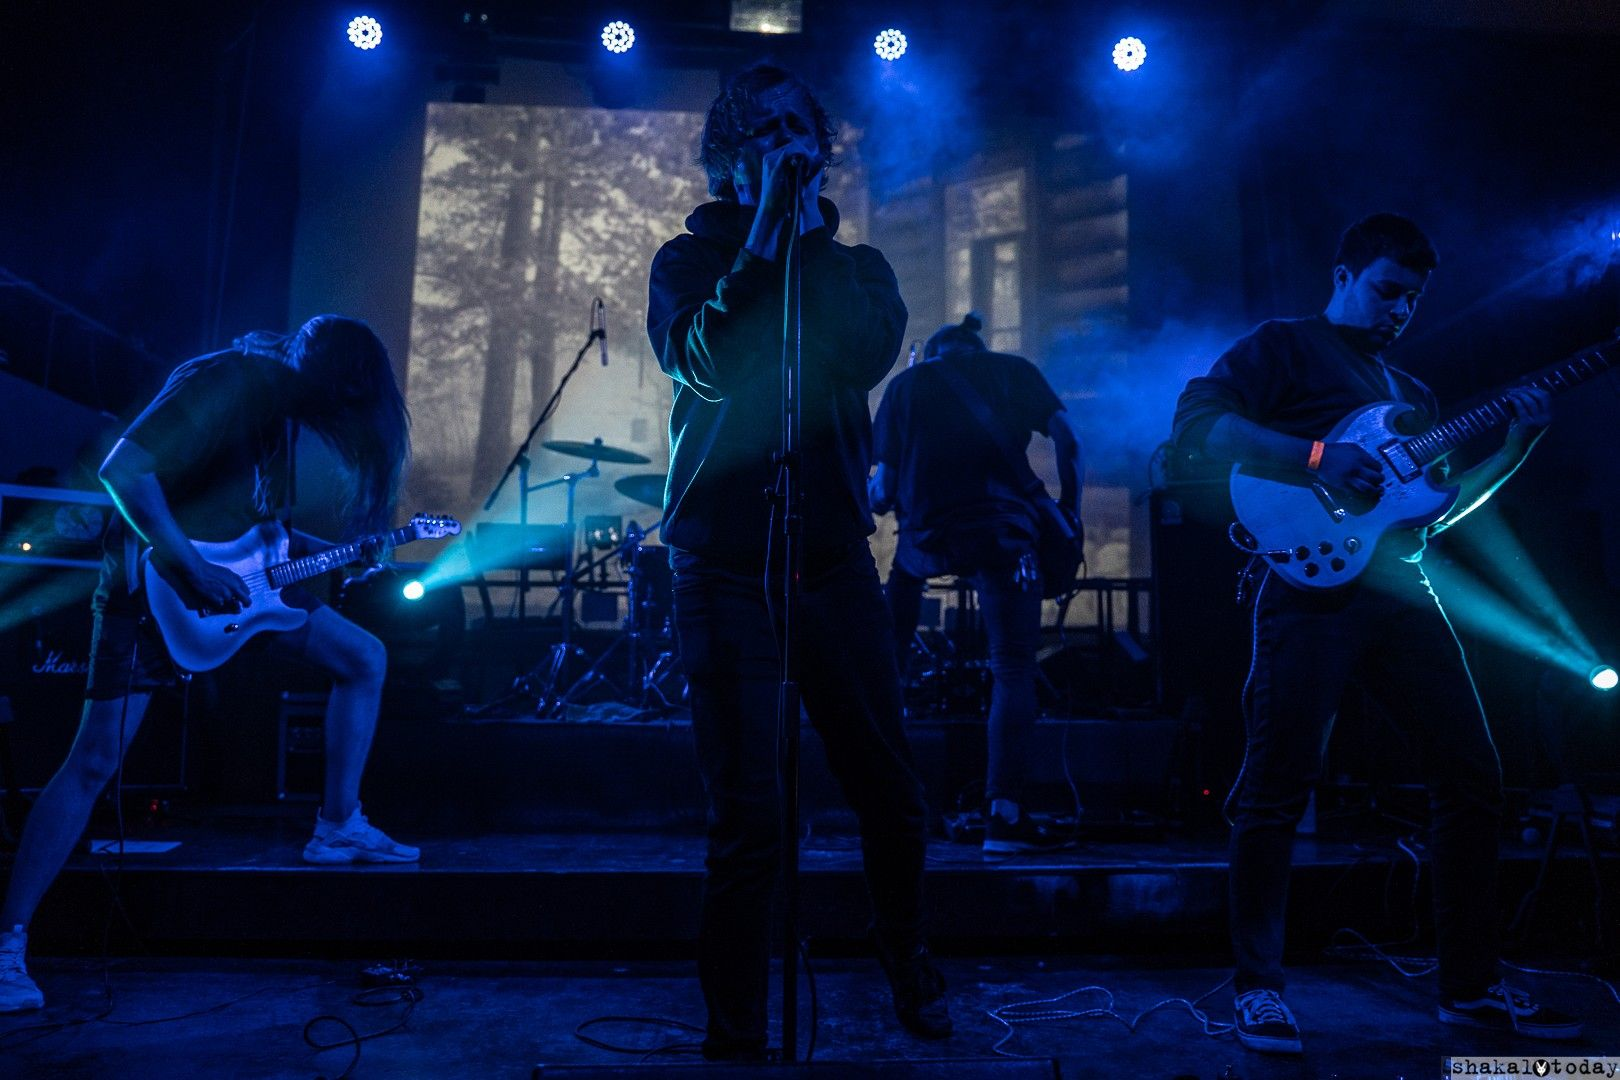 shakal-today-sludge-2018-0034.jpg